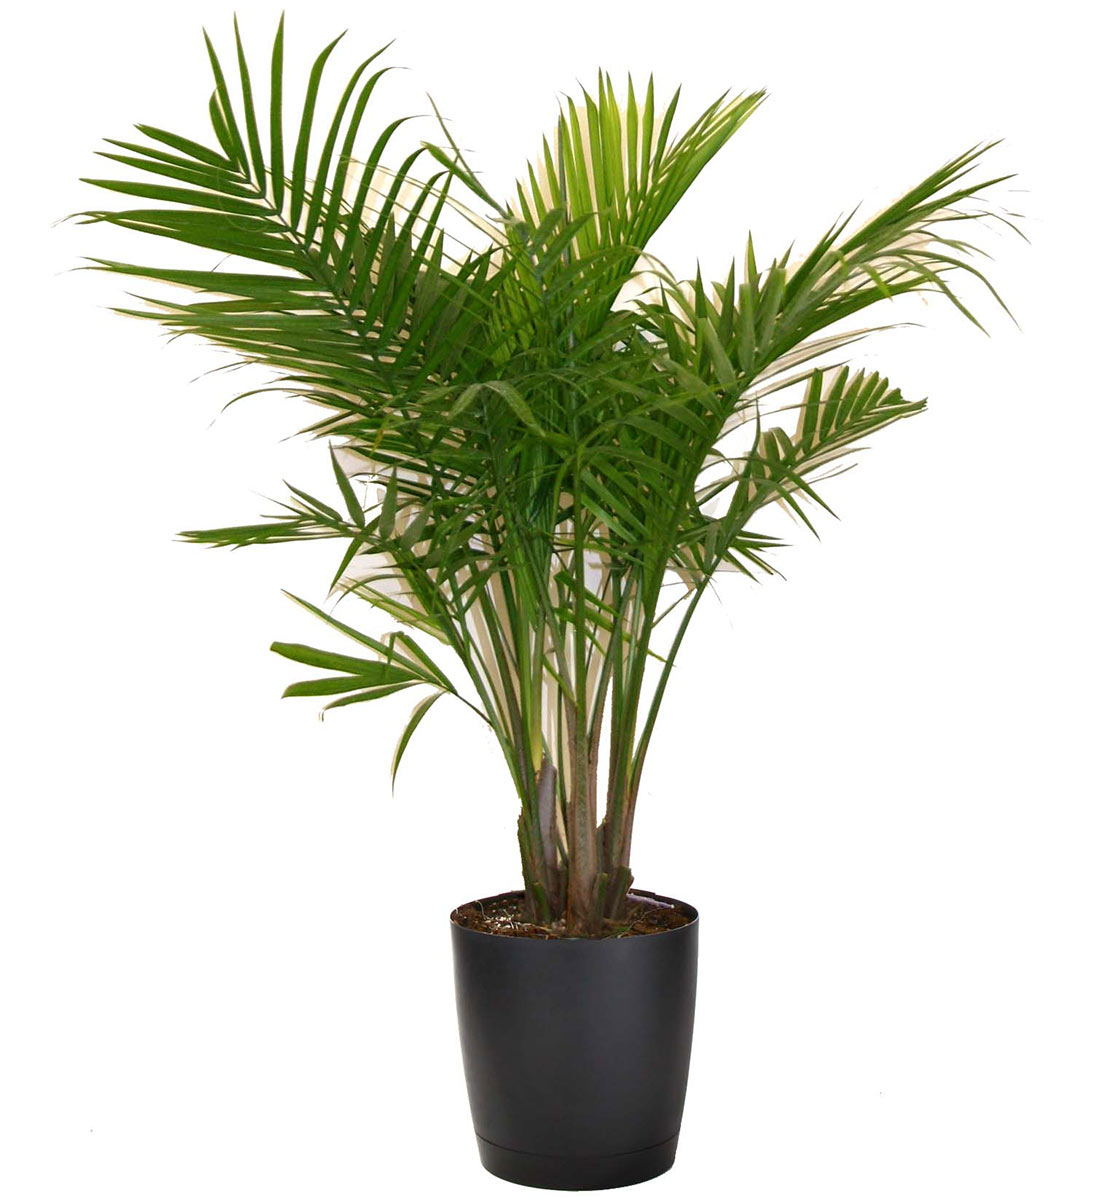 Green Houseplants Majesty Palm Vancouver Plant Rentals